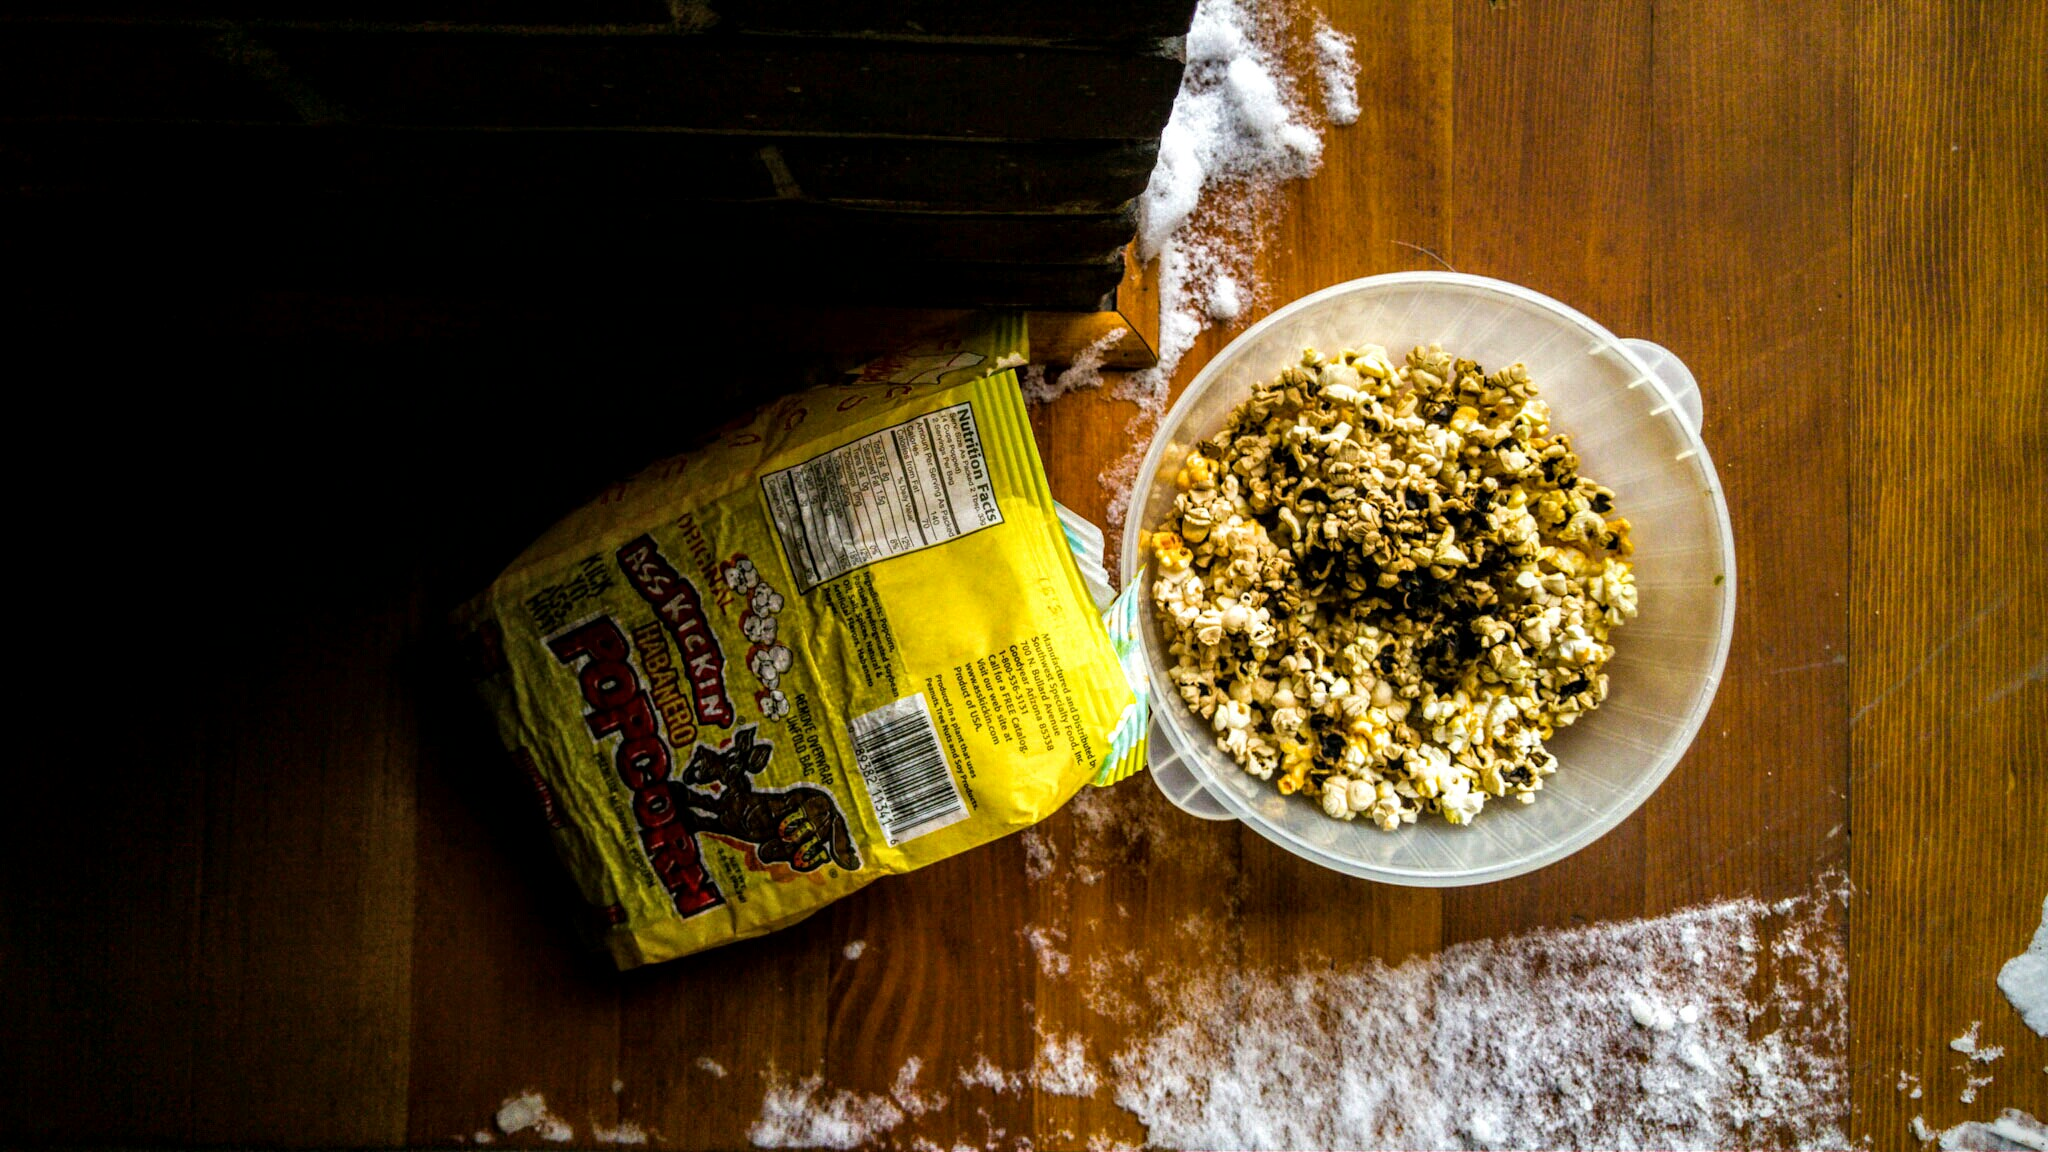 Popcorn on the porch makes me ranty.